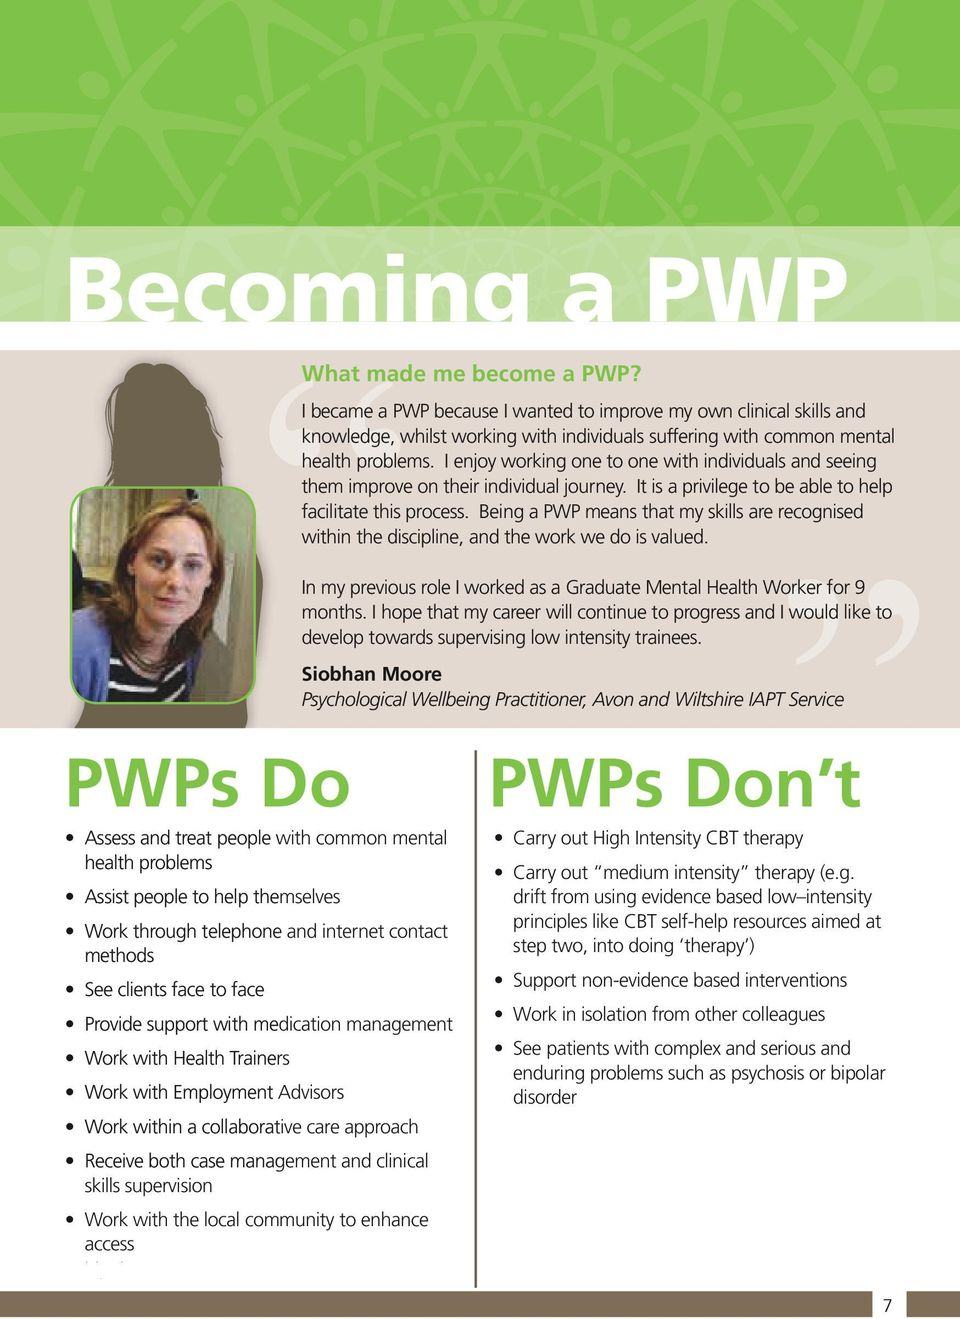 with the local community to enhance access and self referral such as psychosis or bipolar disorder What made me become a PWP?